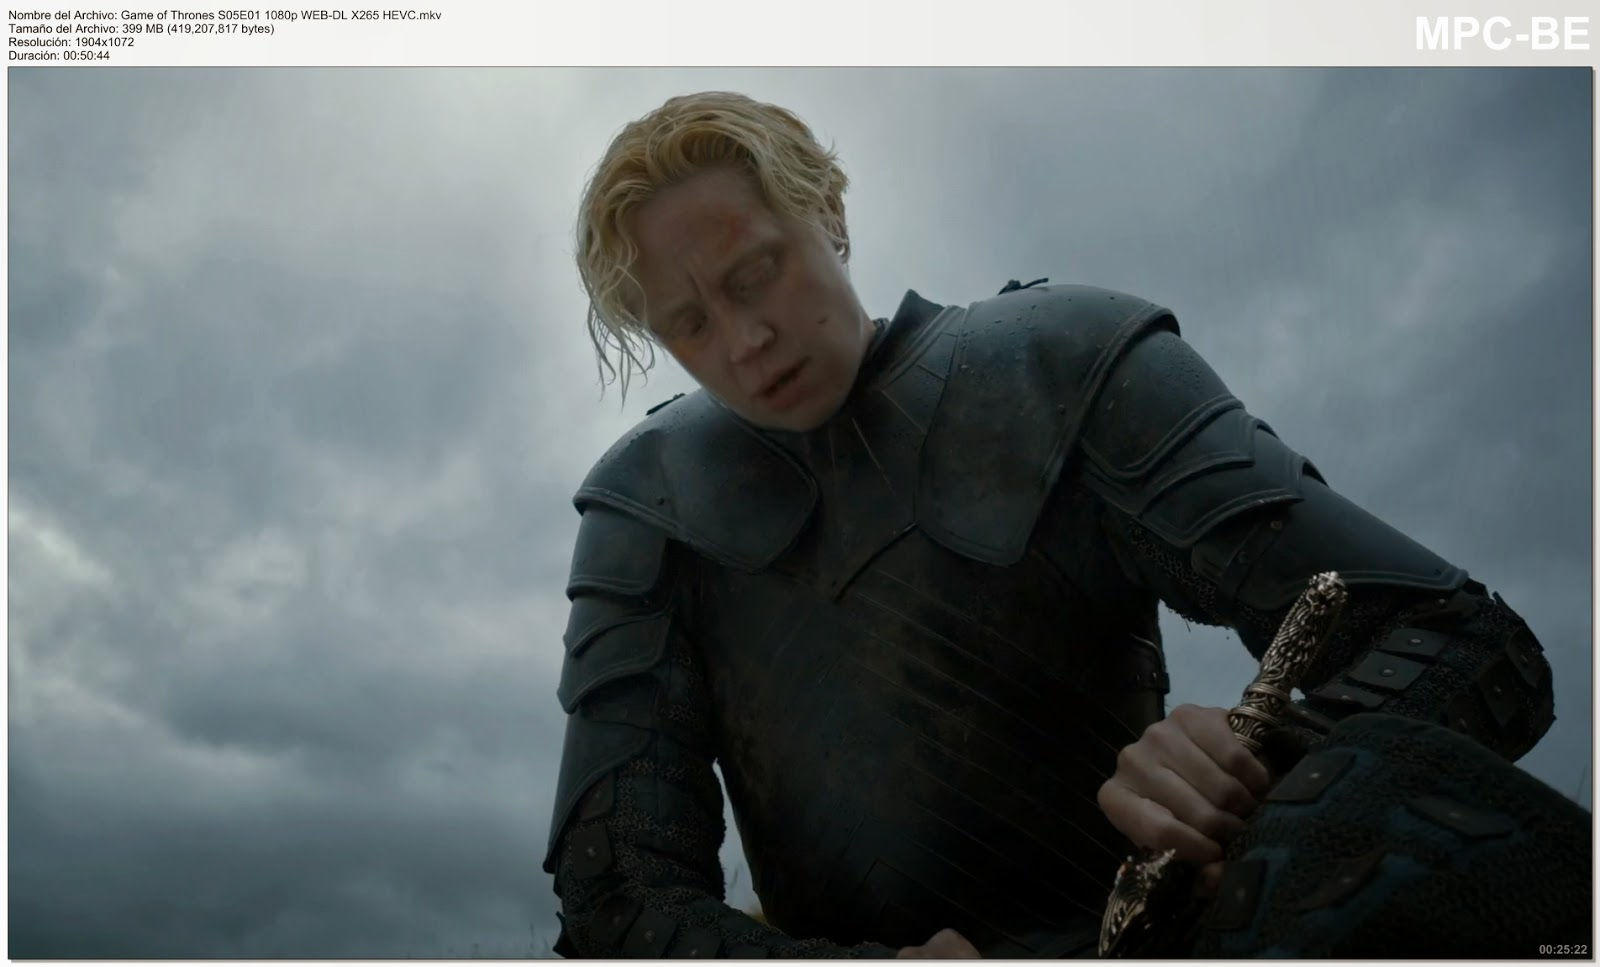 game of thrones s07e06 hd - good audio leaked - eclipse subs